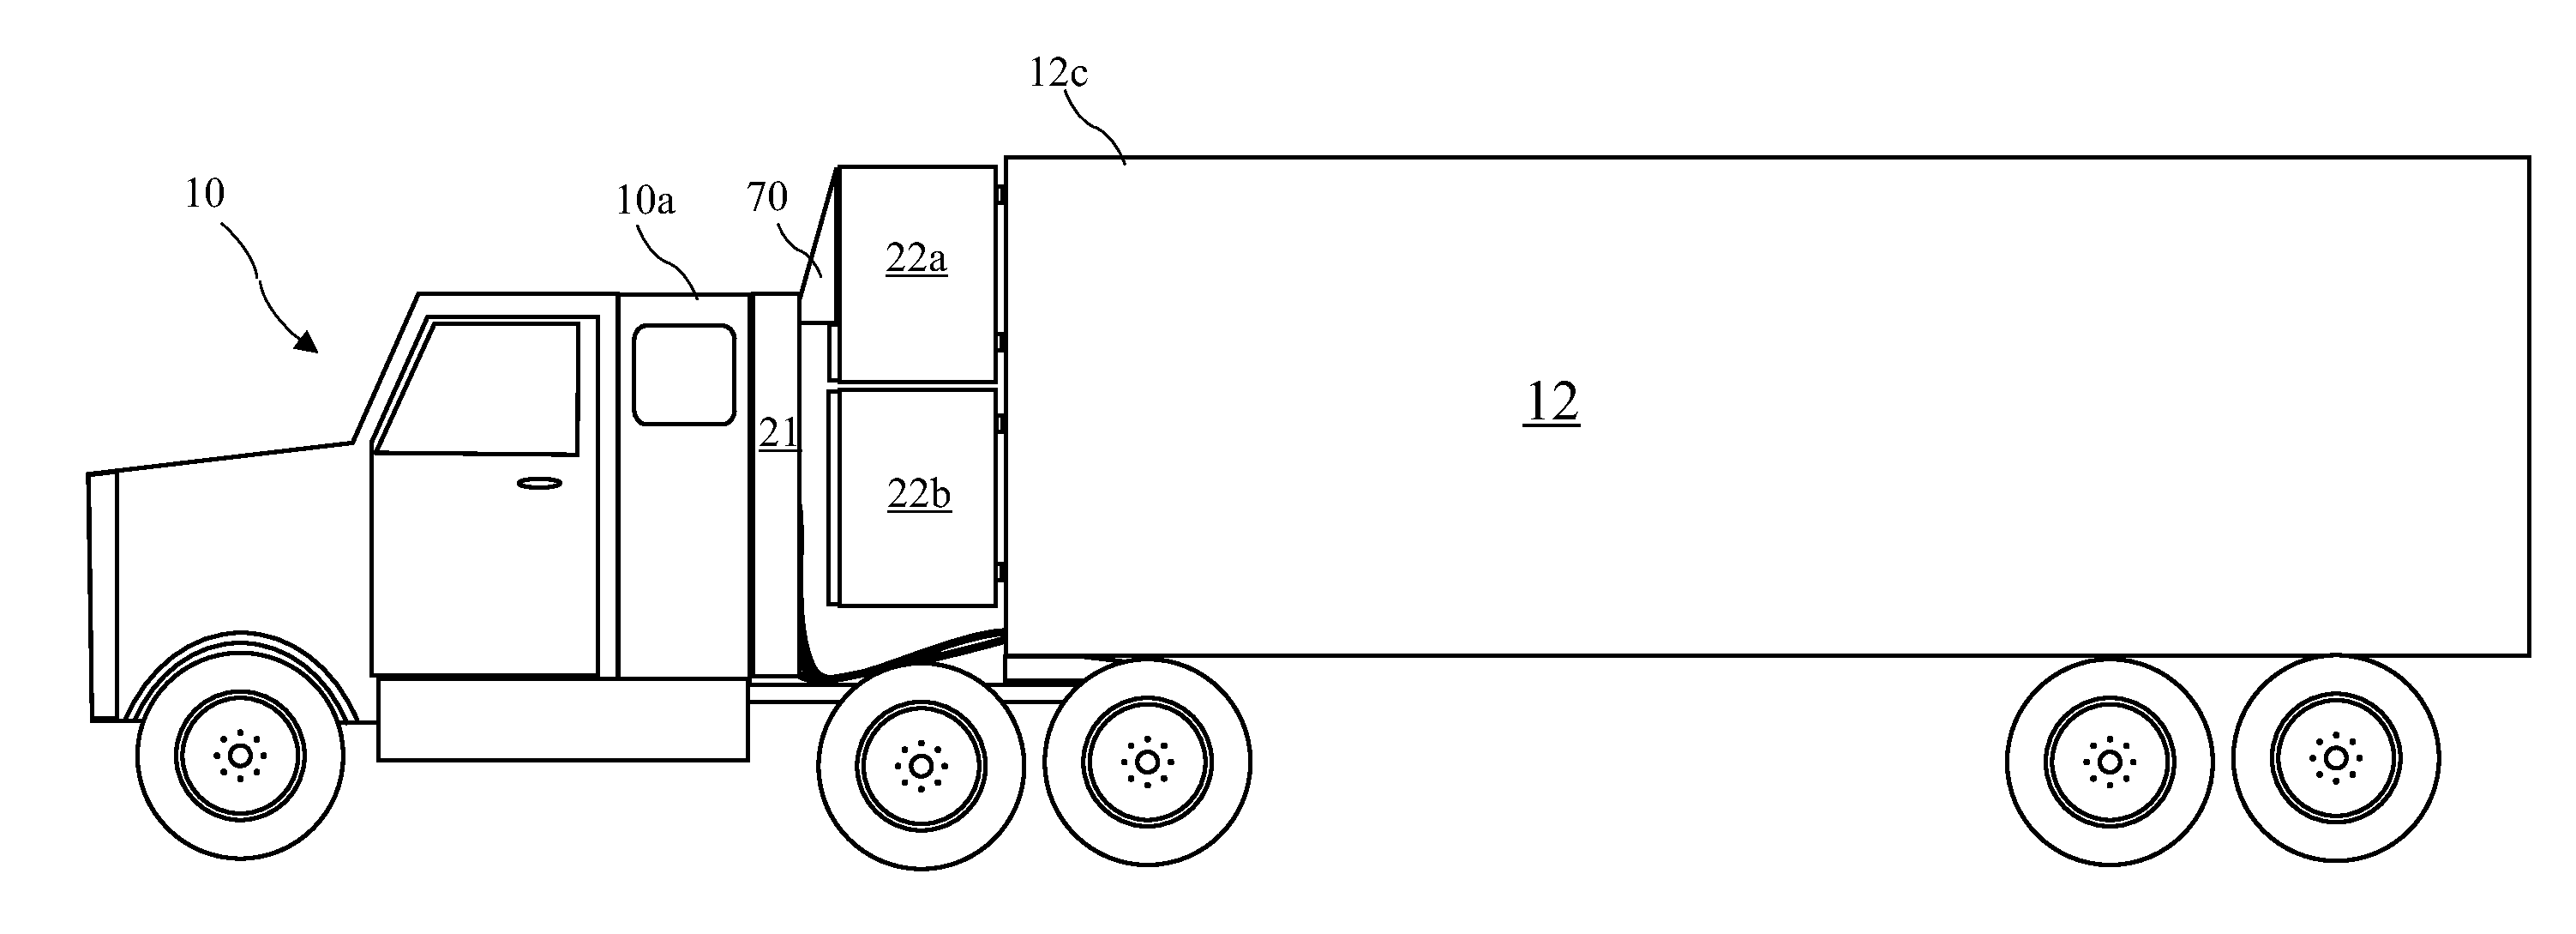 Diagram view besides Chevrolet S 10 2 5 1989 Specs And Images moreover Kenworth Airglide Ag100 Rear Suspension as well Chevrolet Tracker Wiring Diagram in addition Truck Tandems Diagrams. on peterbilt front axle diagram